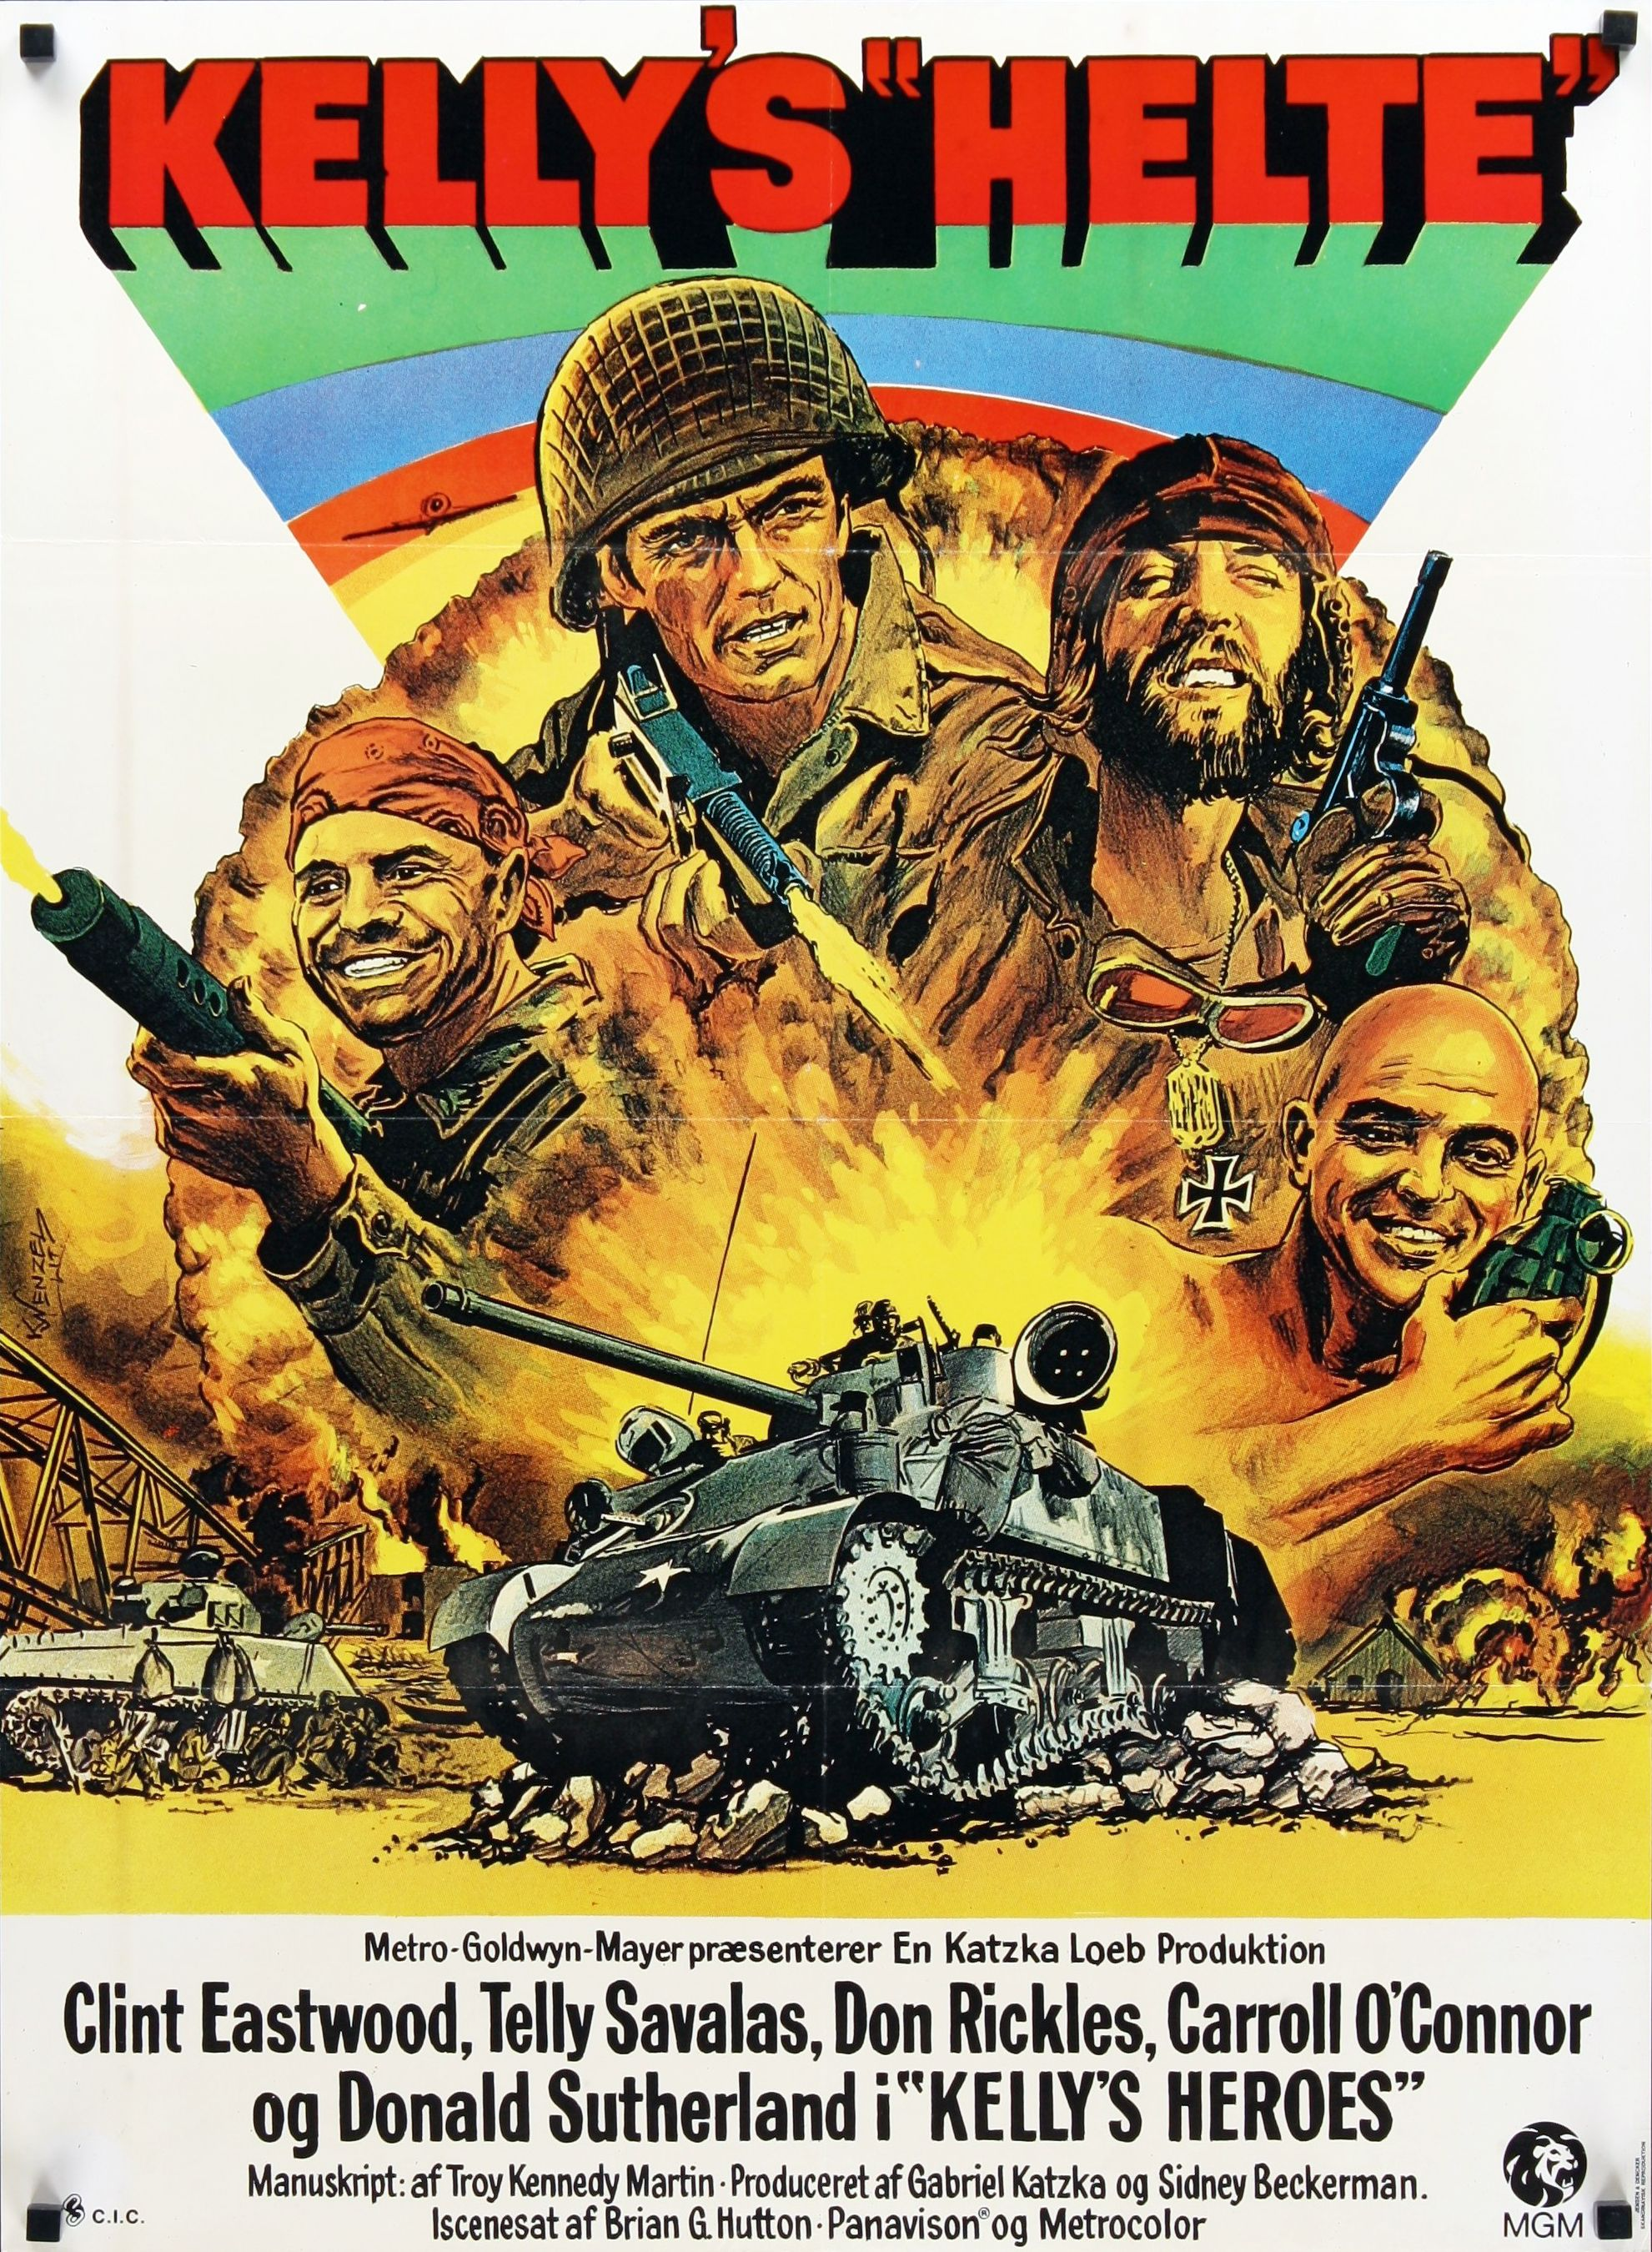 Kelly's Heroes (1970) (Brian G. Hutton) | Movie Posters